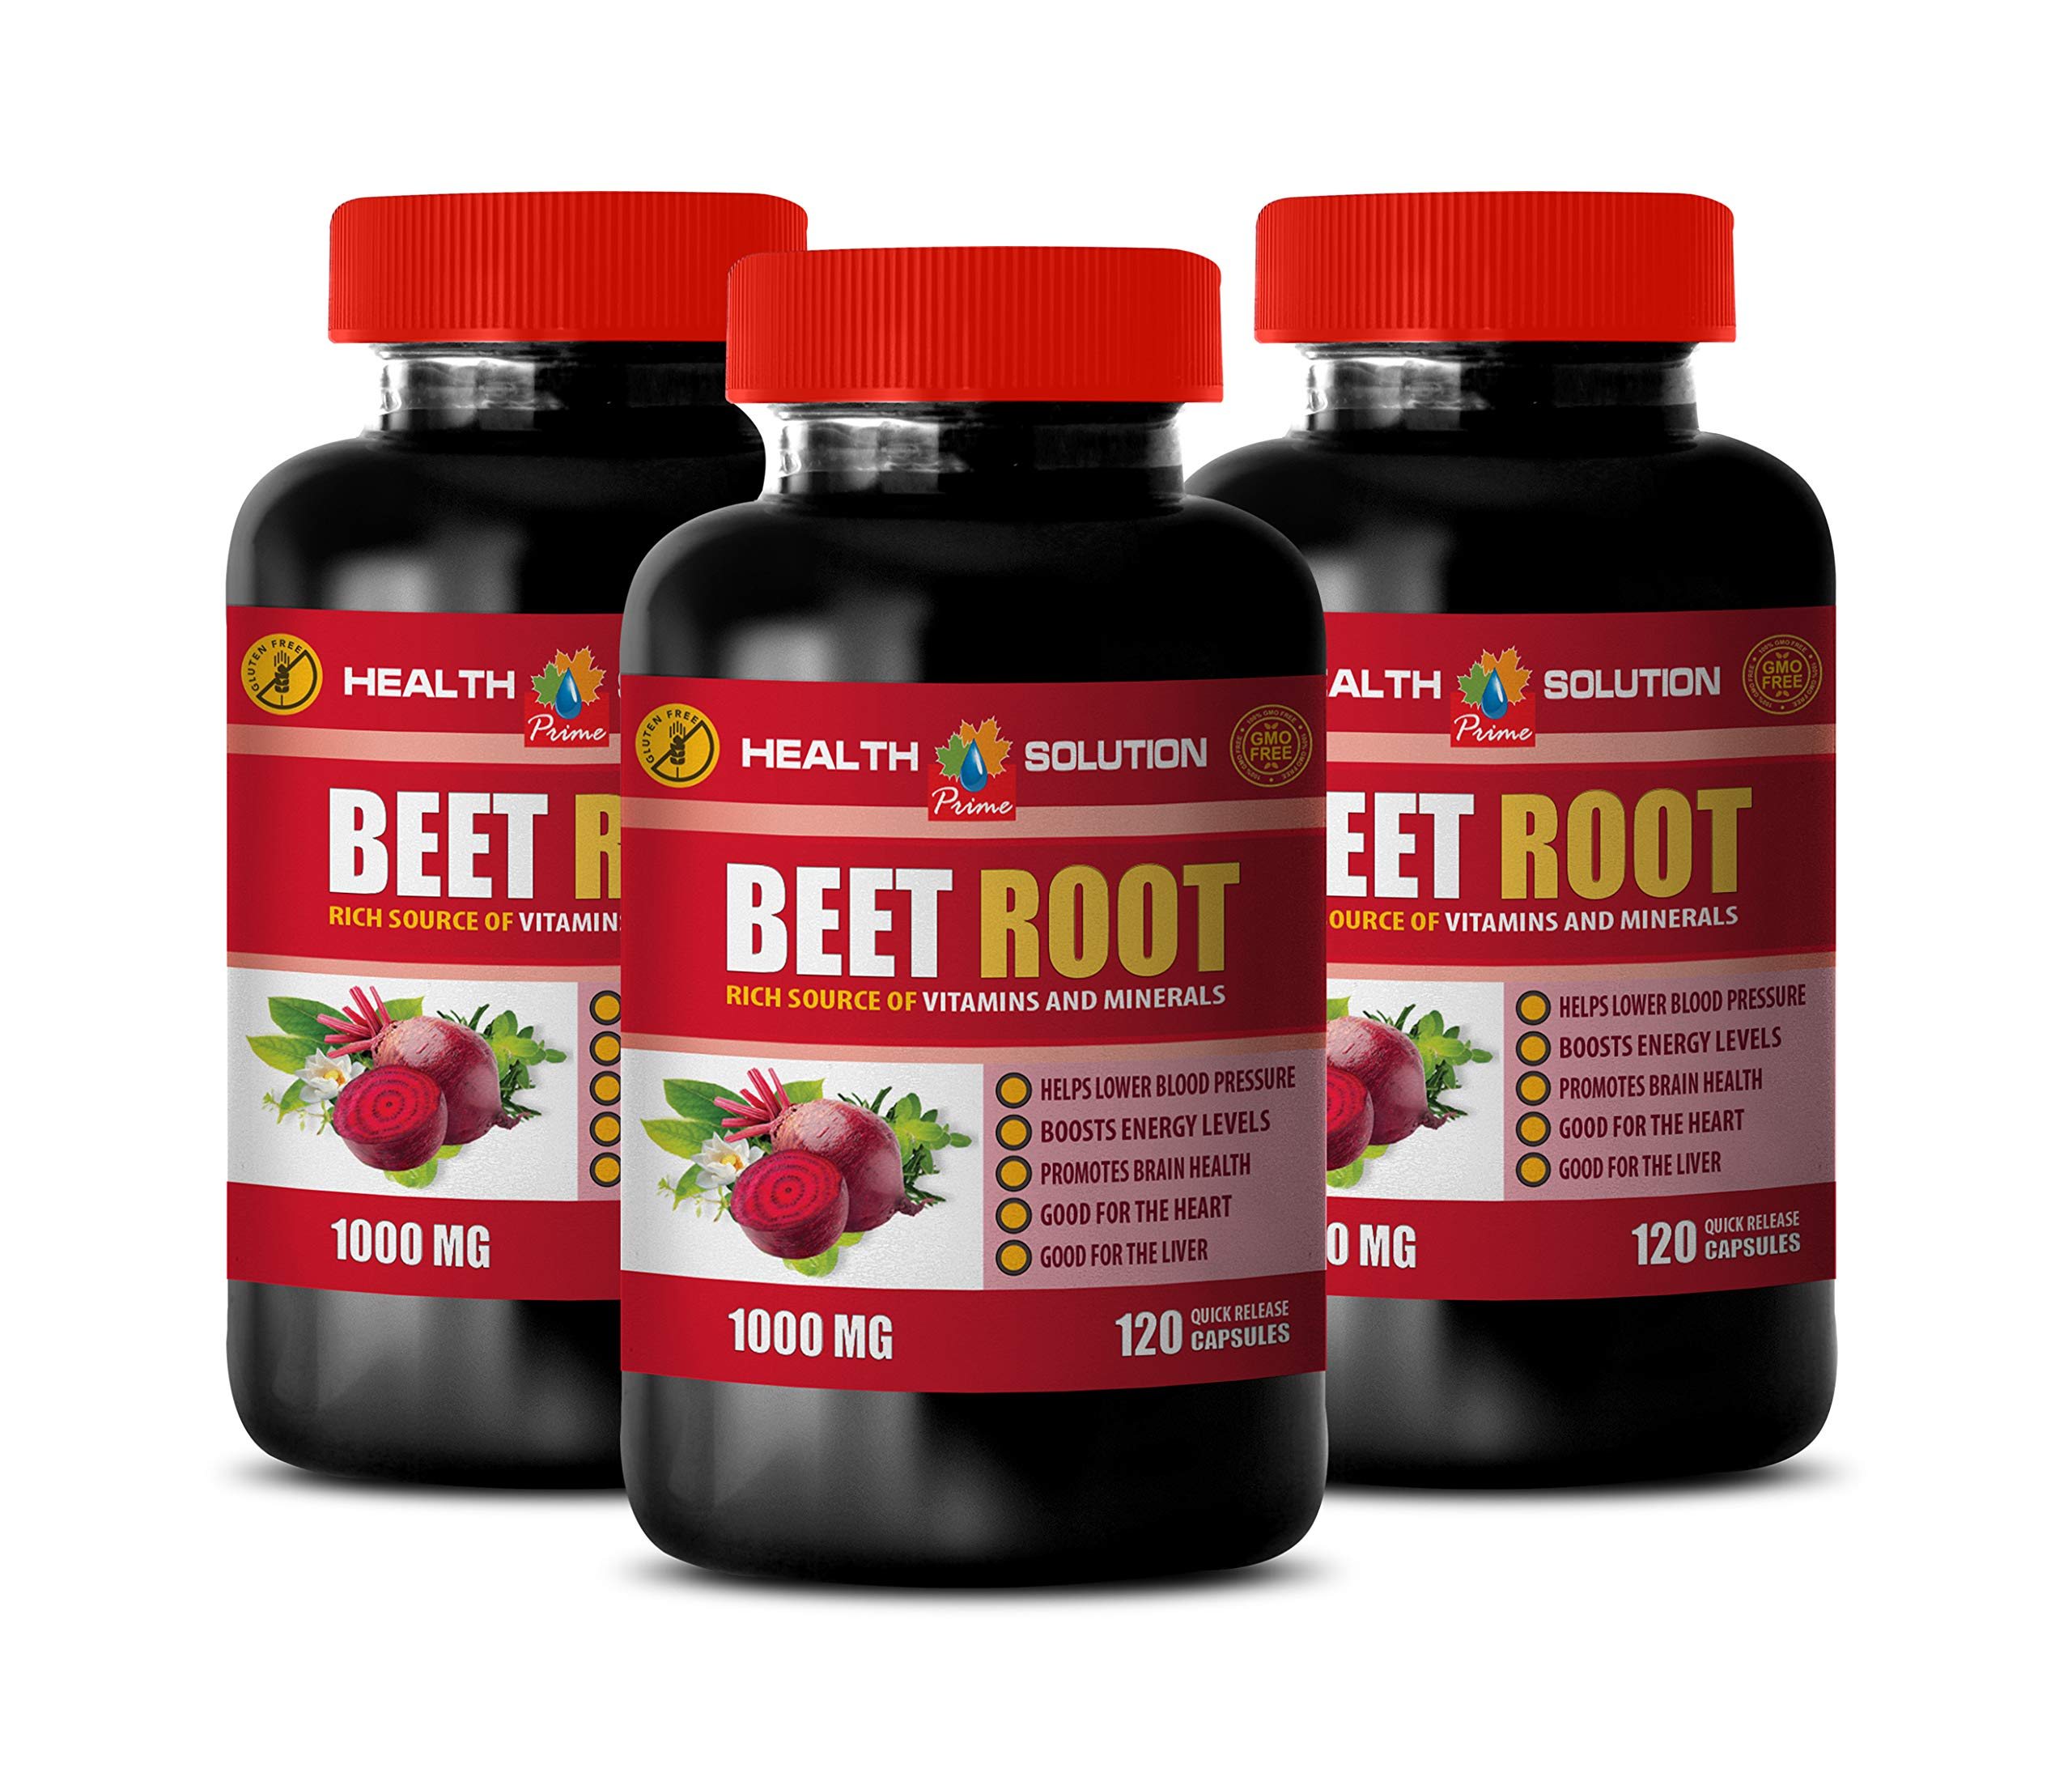 Brain Support Formula - Beet Root 1000MG - Rich Source of Vitamins and Minerals - Beets Supplements for Men - 3 Bottles 360 Capsules by Health Solution Prime